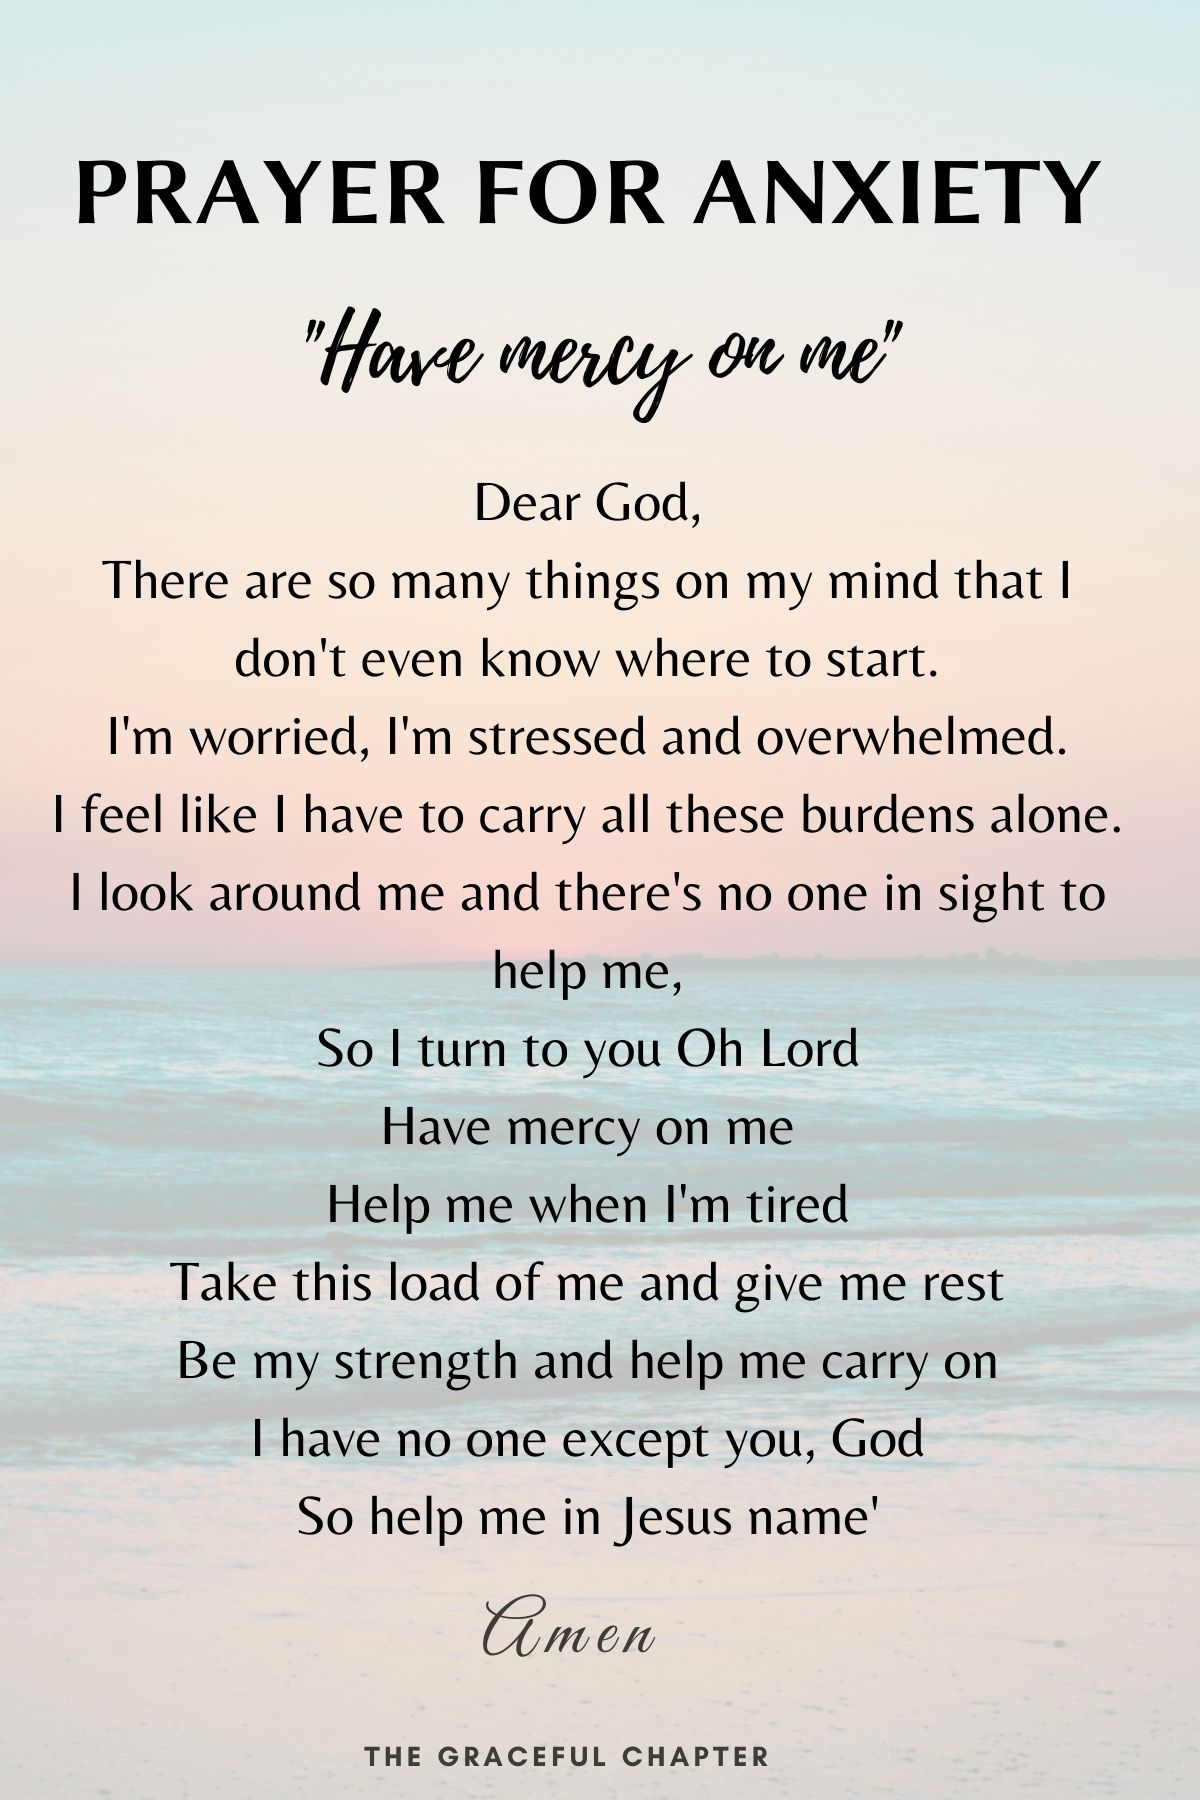 Prayer for anxiety - have mercy on me